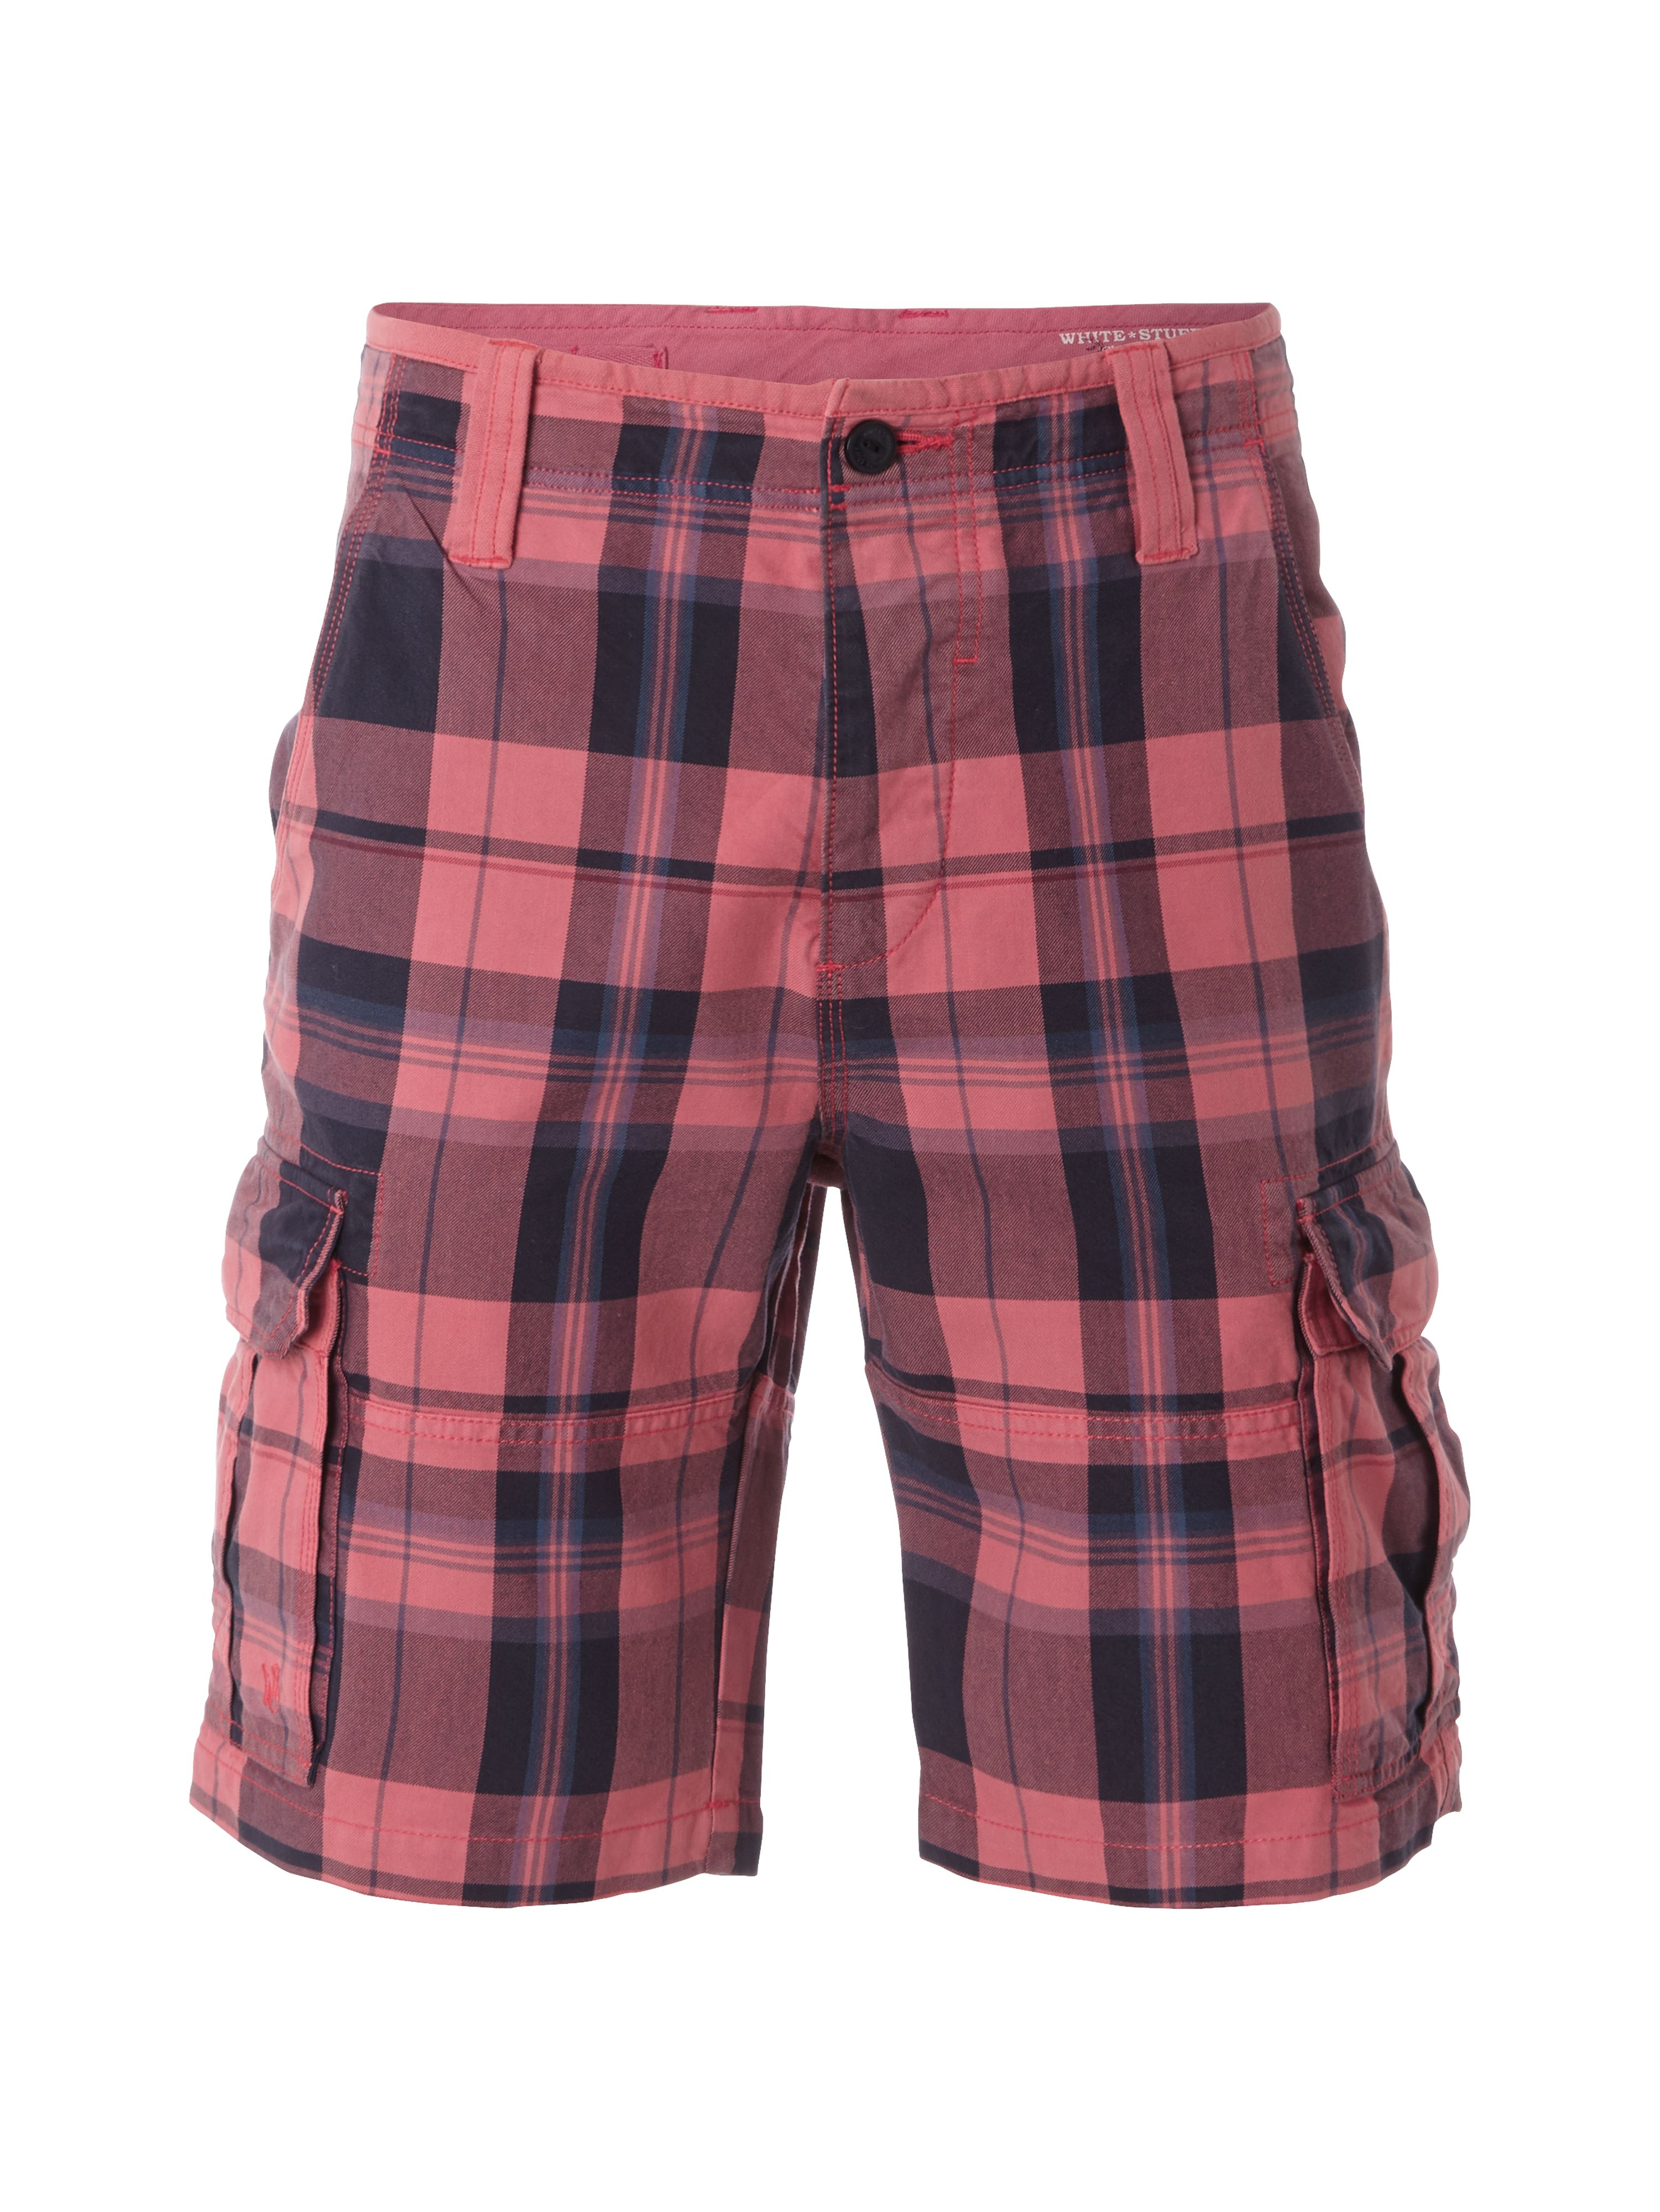 Rockface check shorts